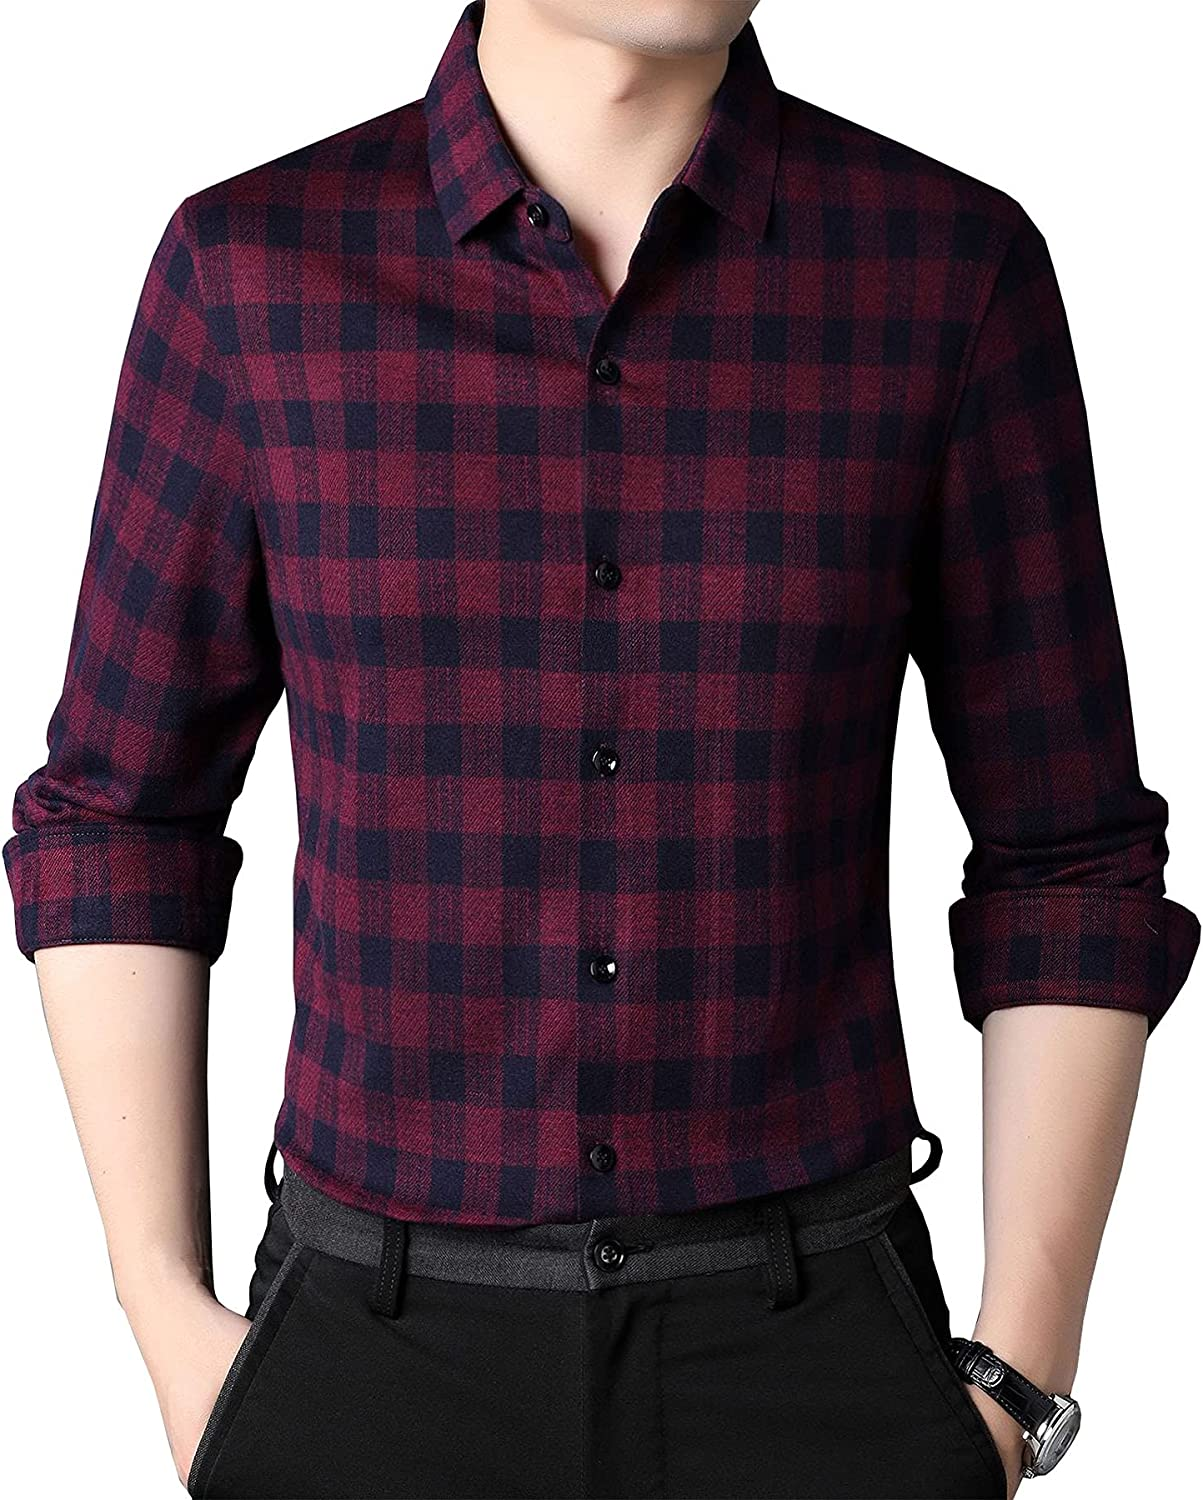 Men's Business Padded Long-Sleeved Shirt Plaid Wool Cashmere Middle-Aged Shirt Men